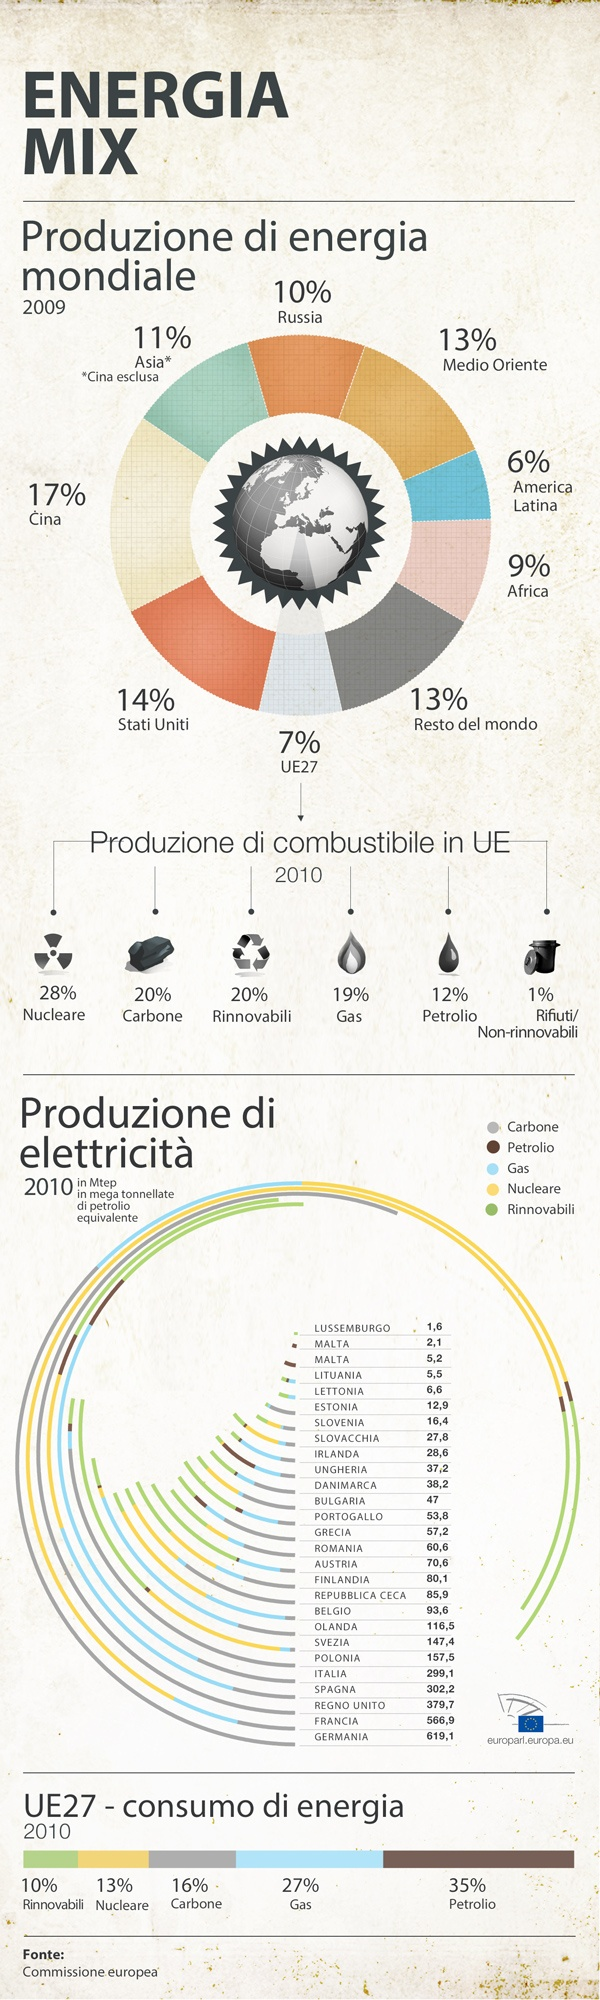 Il mix energetico dell'Unione Europea in infografica